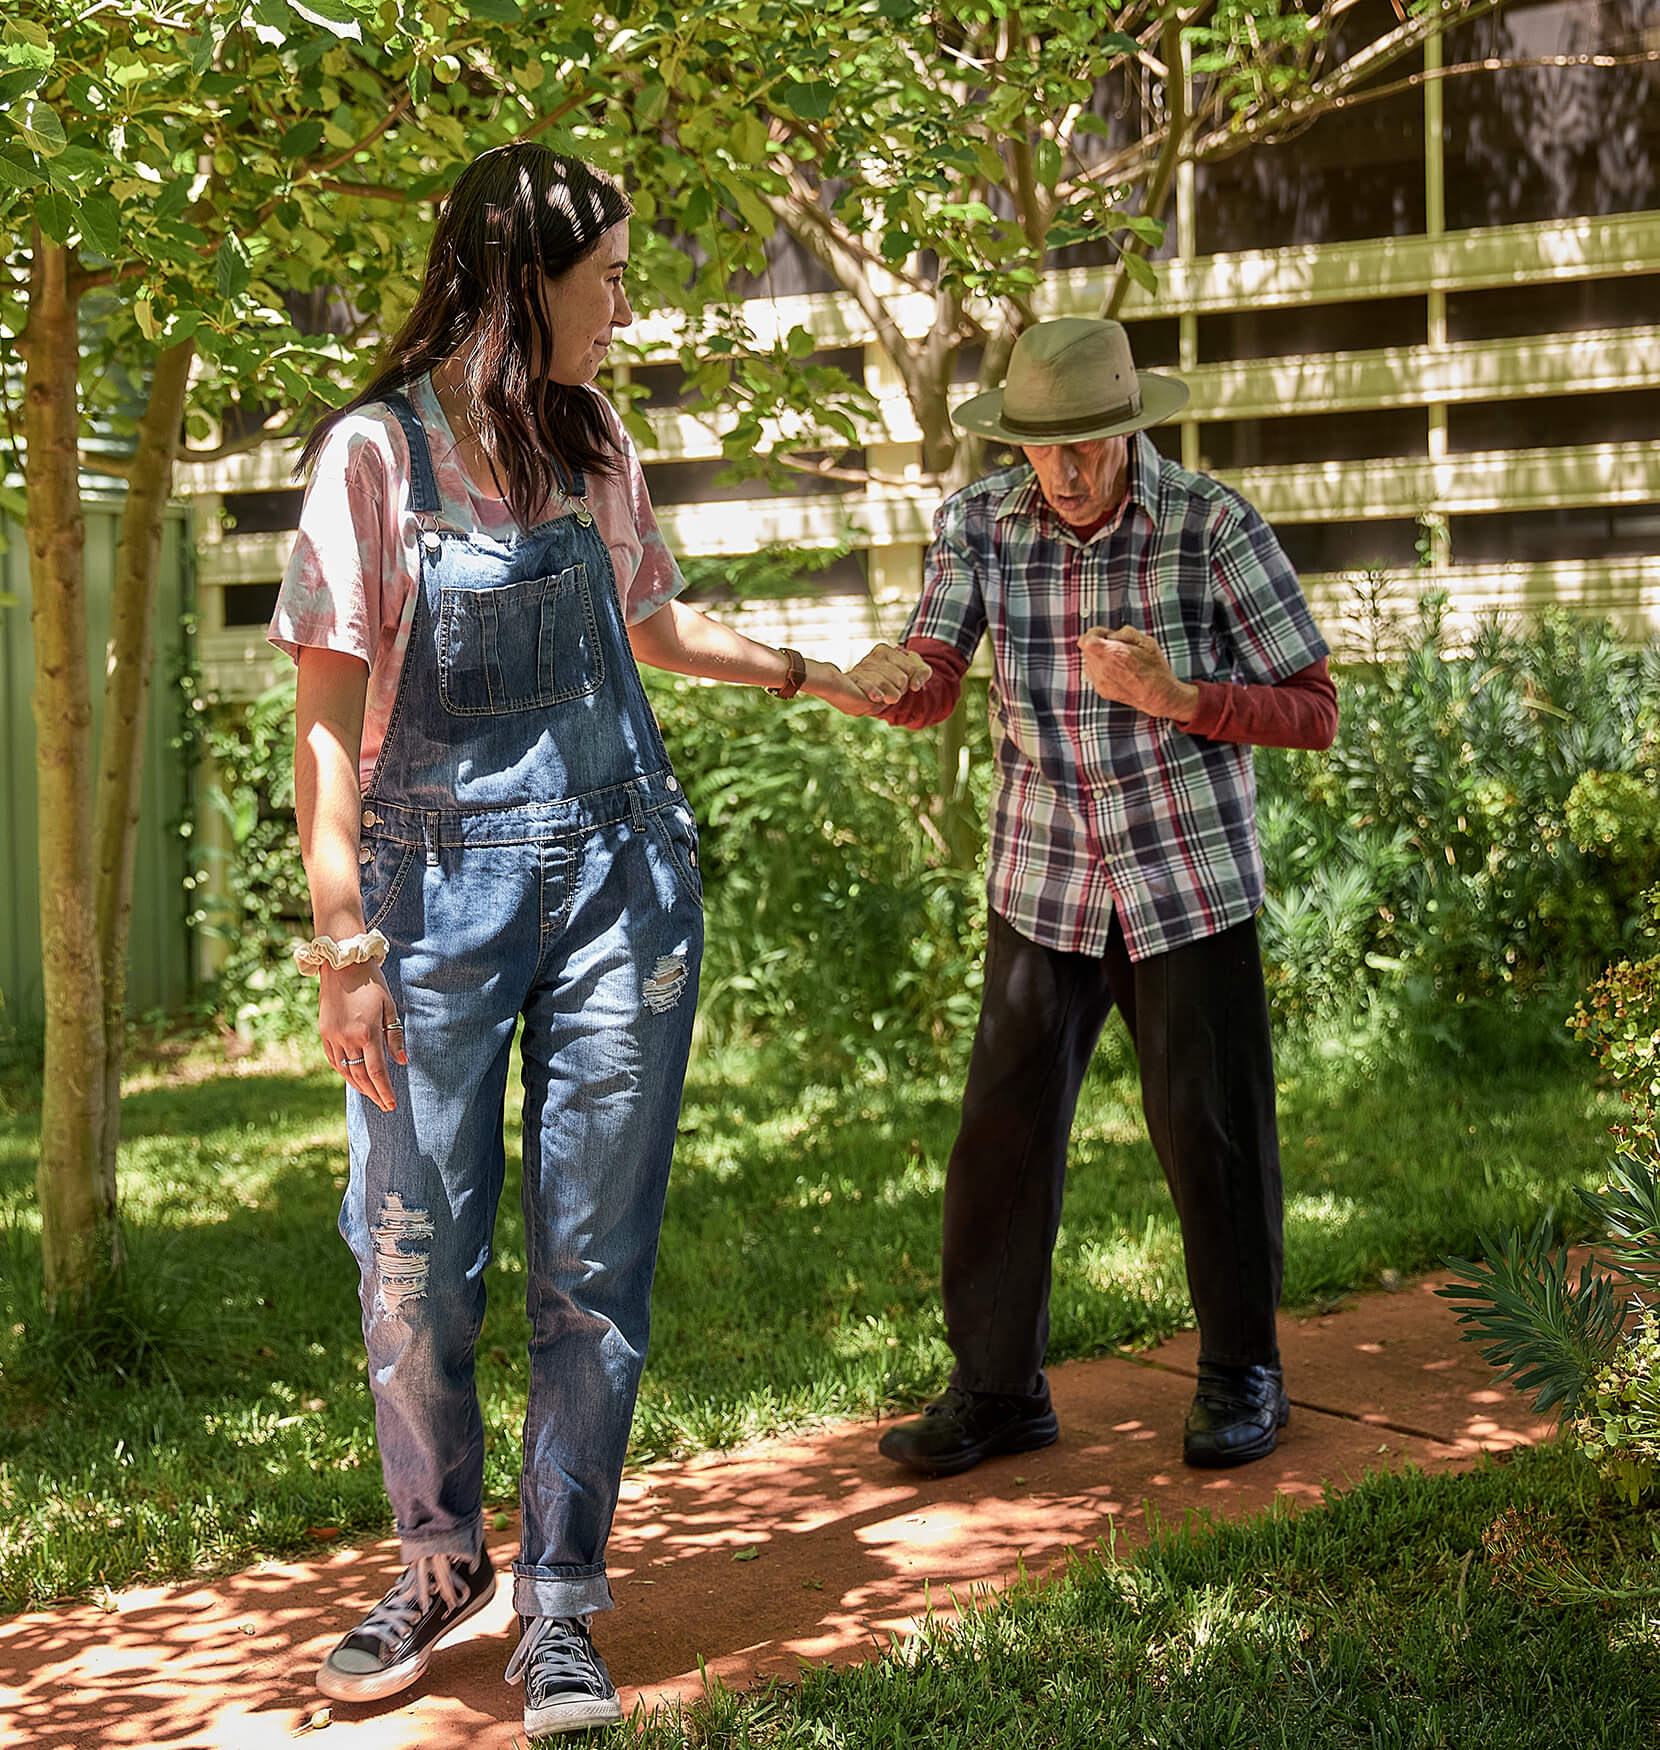 A photo of an older man in a vibrant green garden wearing a wide brimmed hat and flannel shirt. He is being assisted by a young woman in denim overalls who is holding the mans hand and gently guiding him.